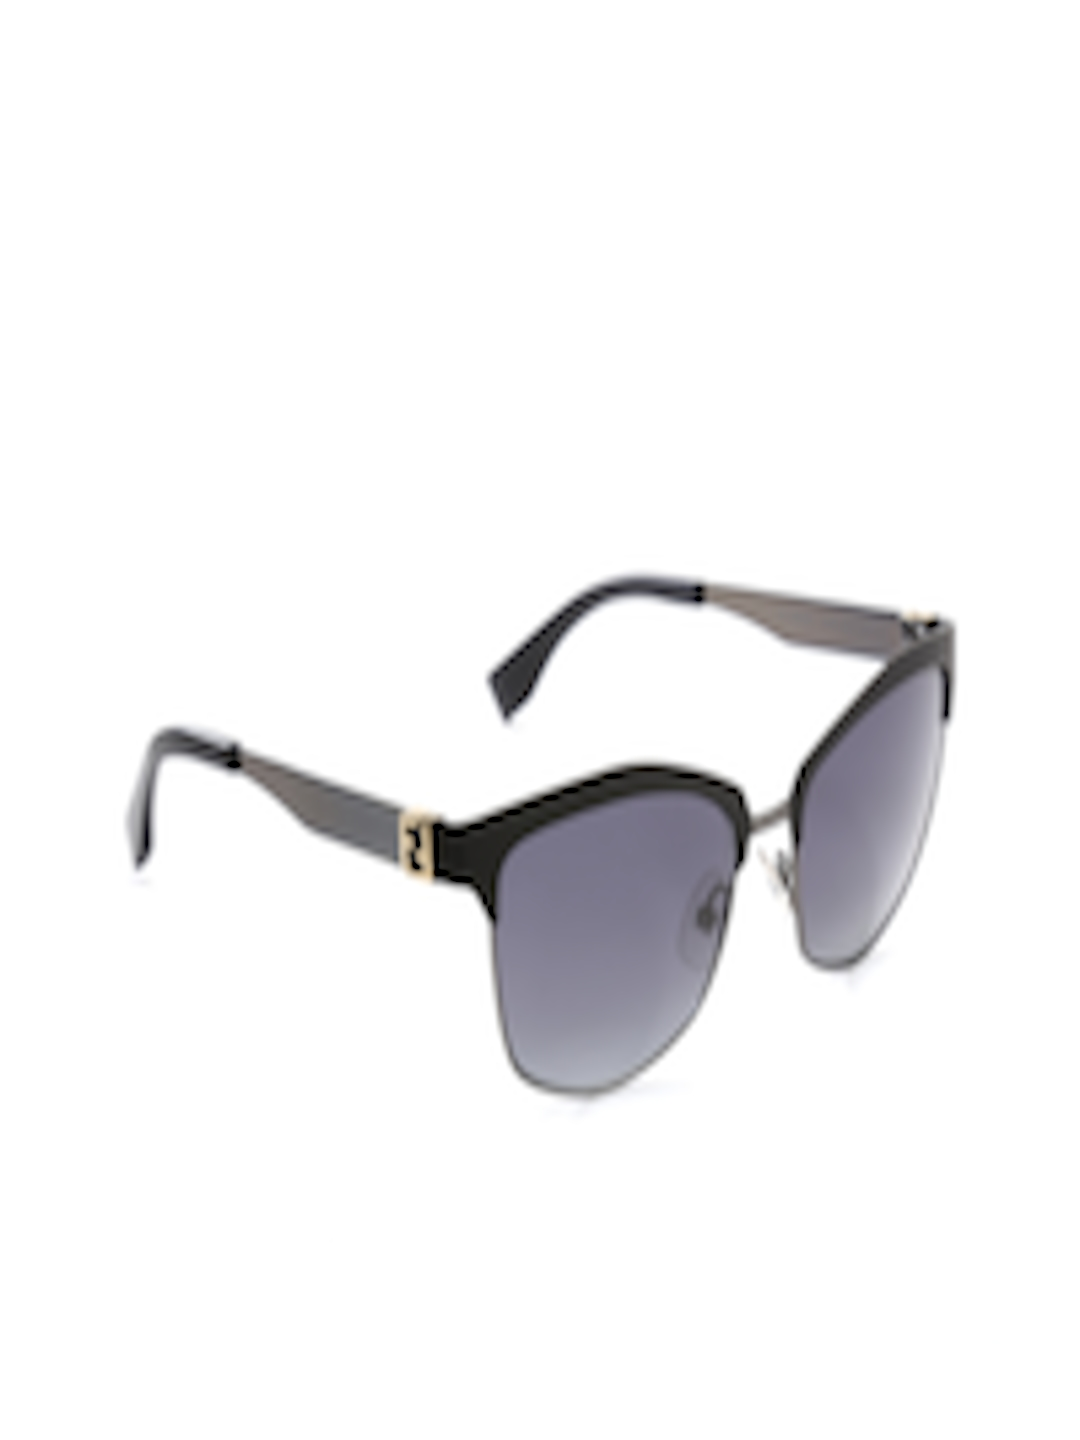 b6b8d8af14 Buy Fendi Women Clubmaster Sunglasses 0051 S 2JVHD - Sunglasses for Women  1233987